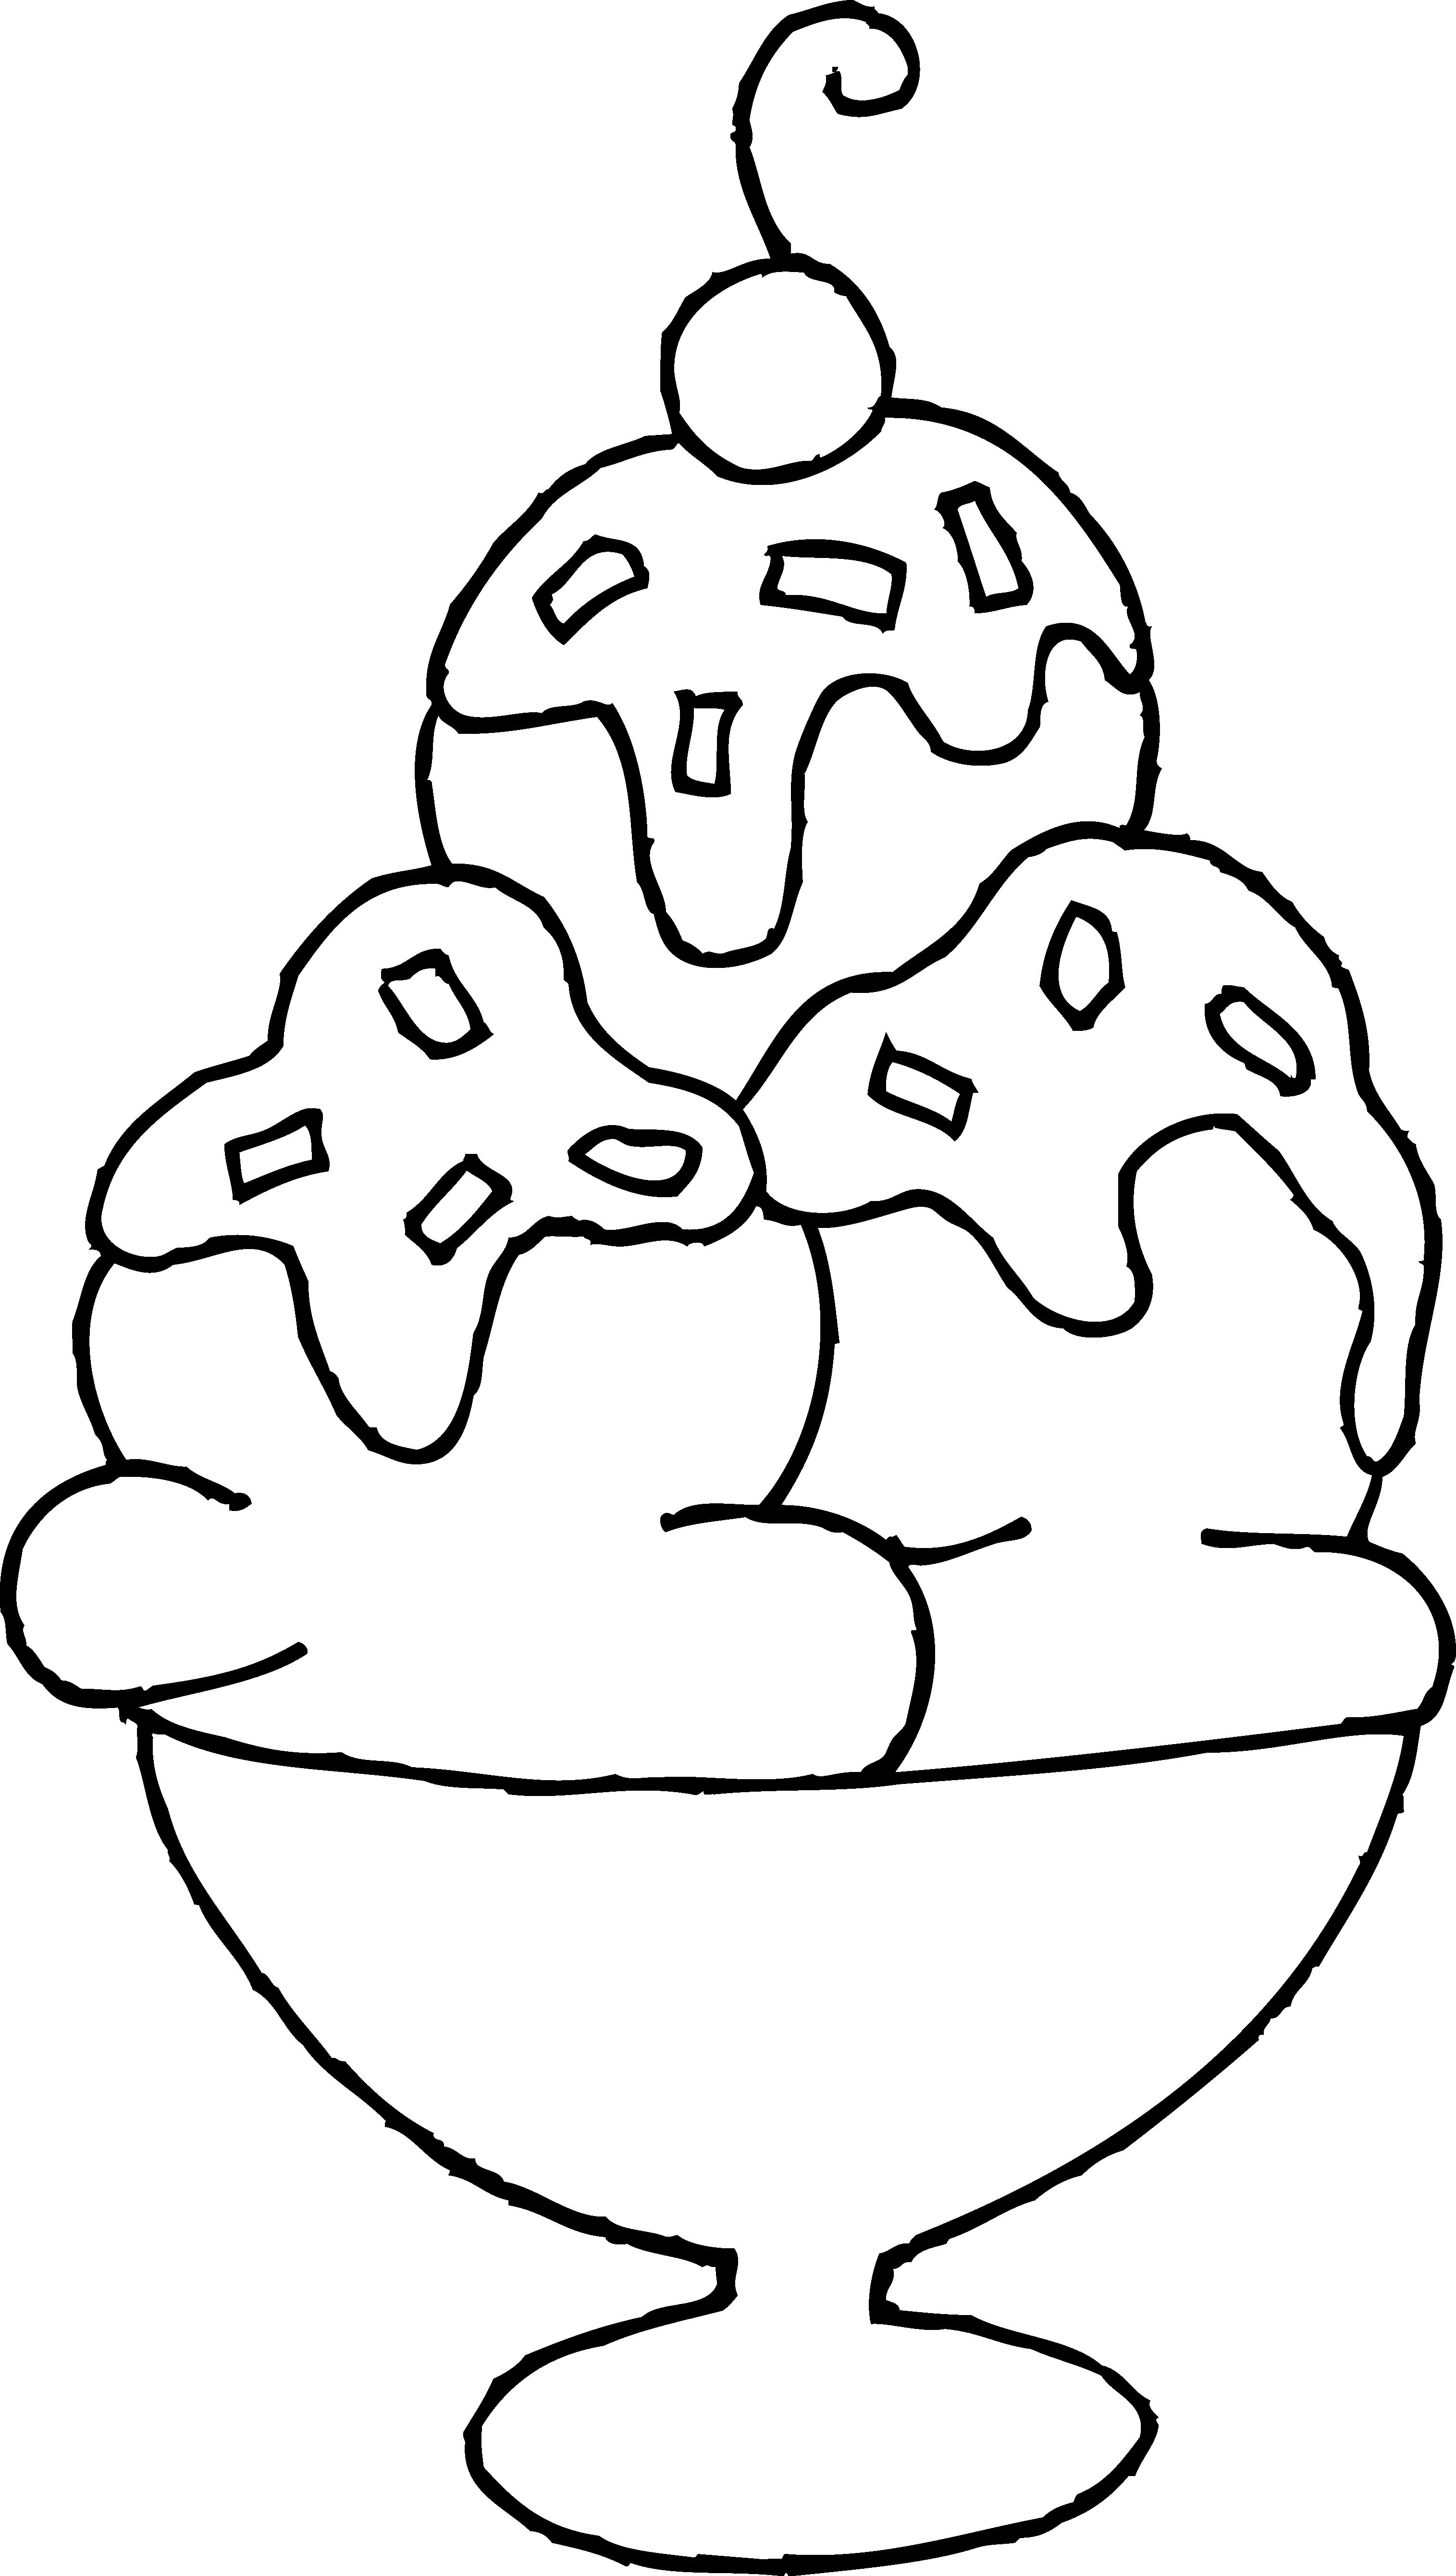 coloring pages of ice cream ice cream cone coloring page clipart best coloring ice cream of pages